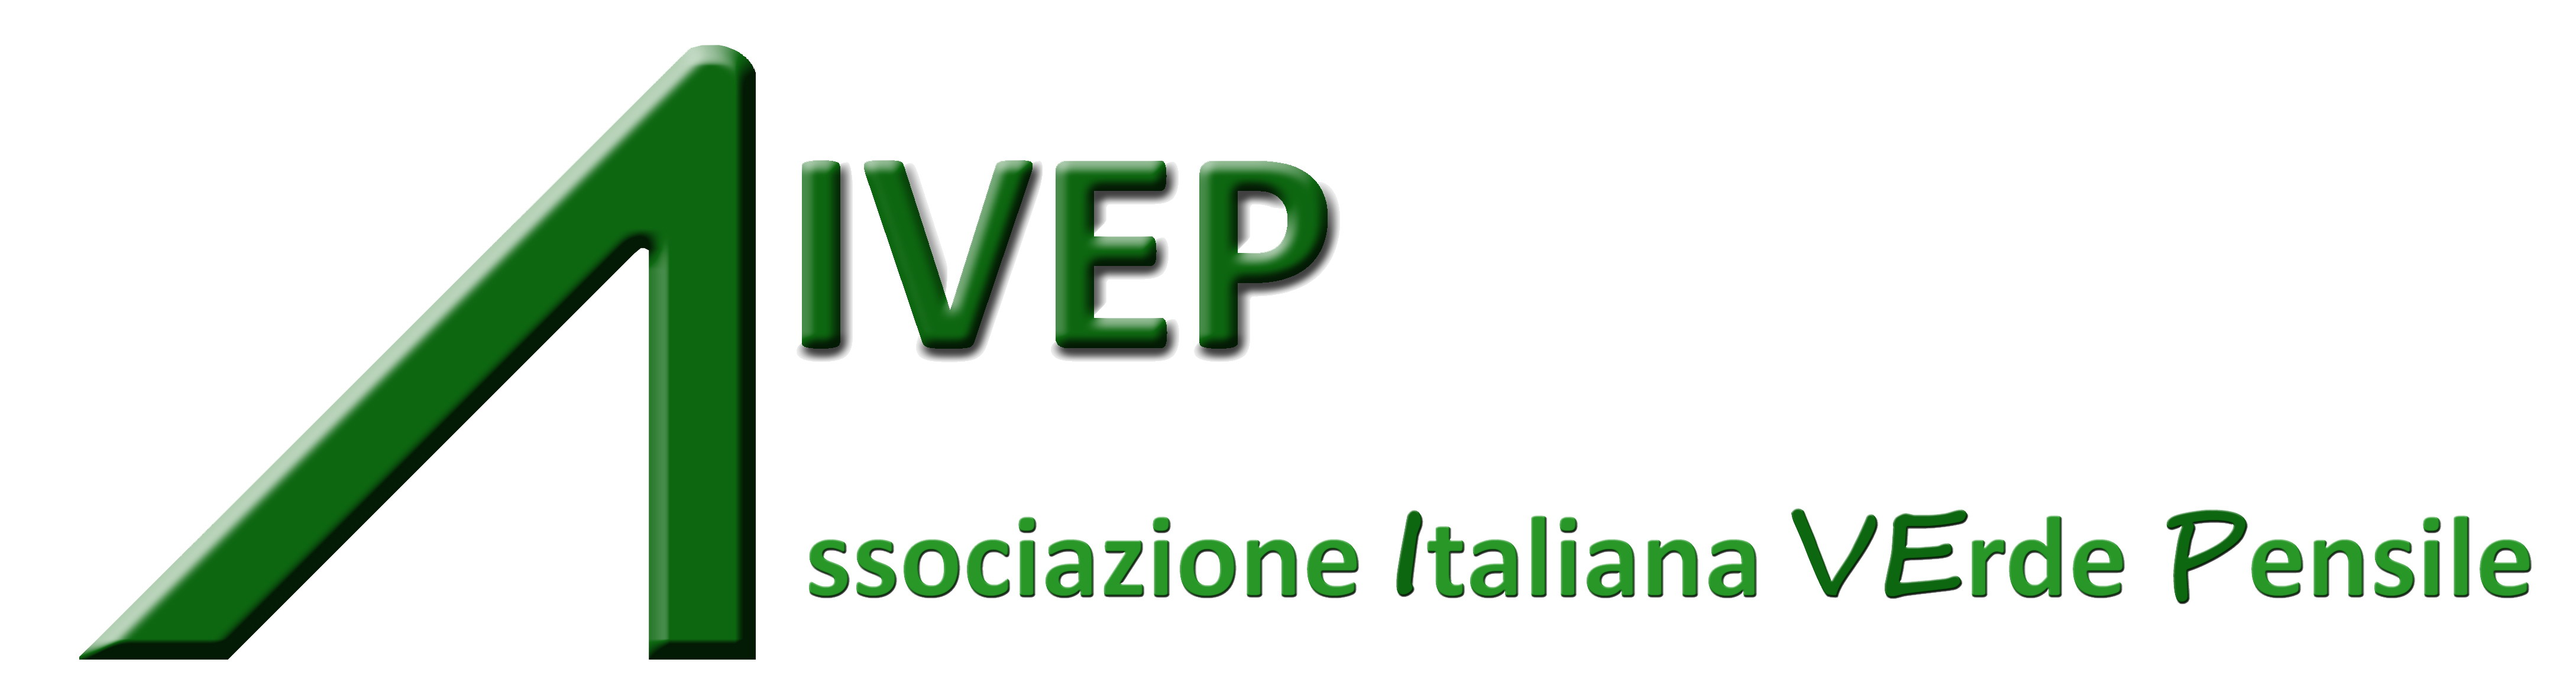 AIVEP_logo base